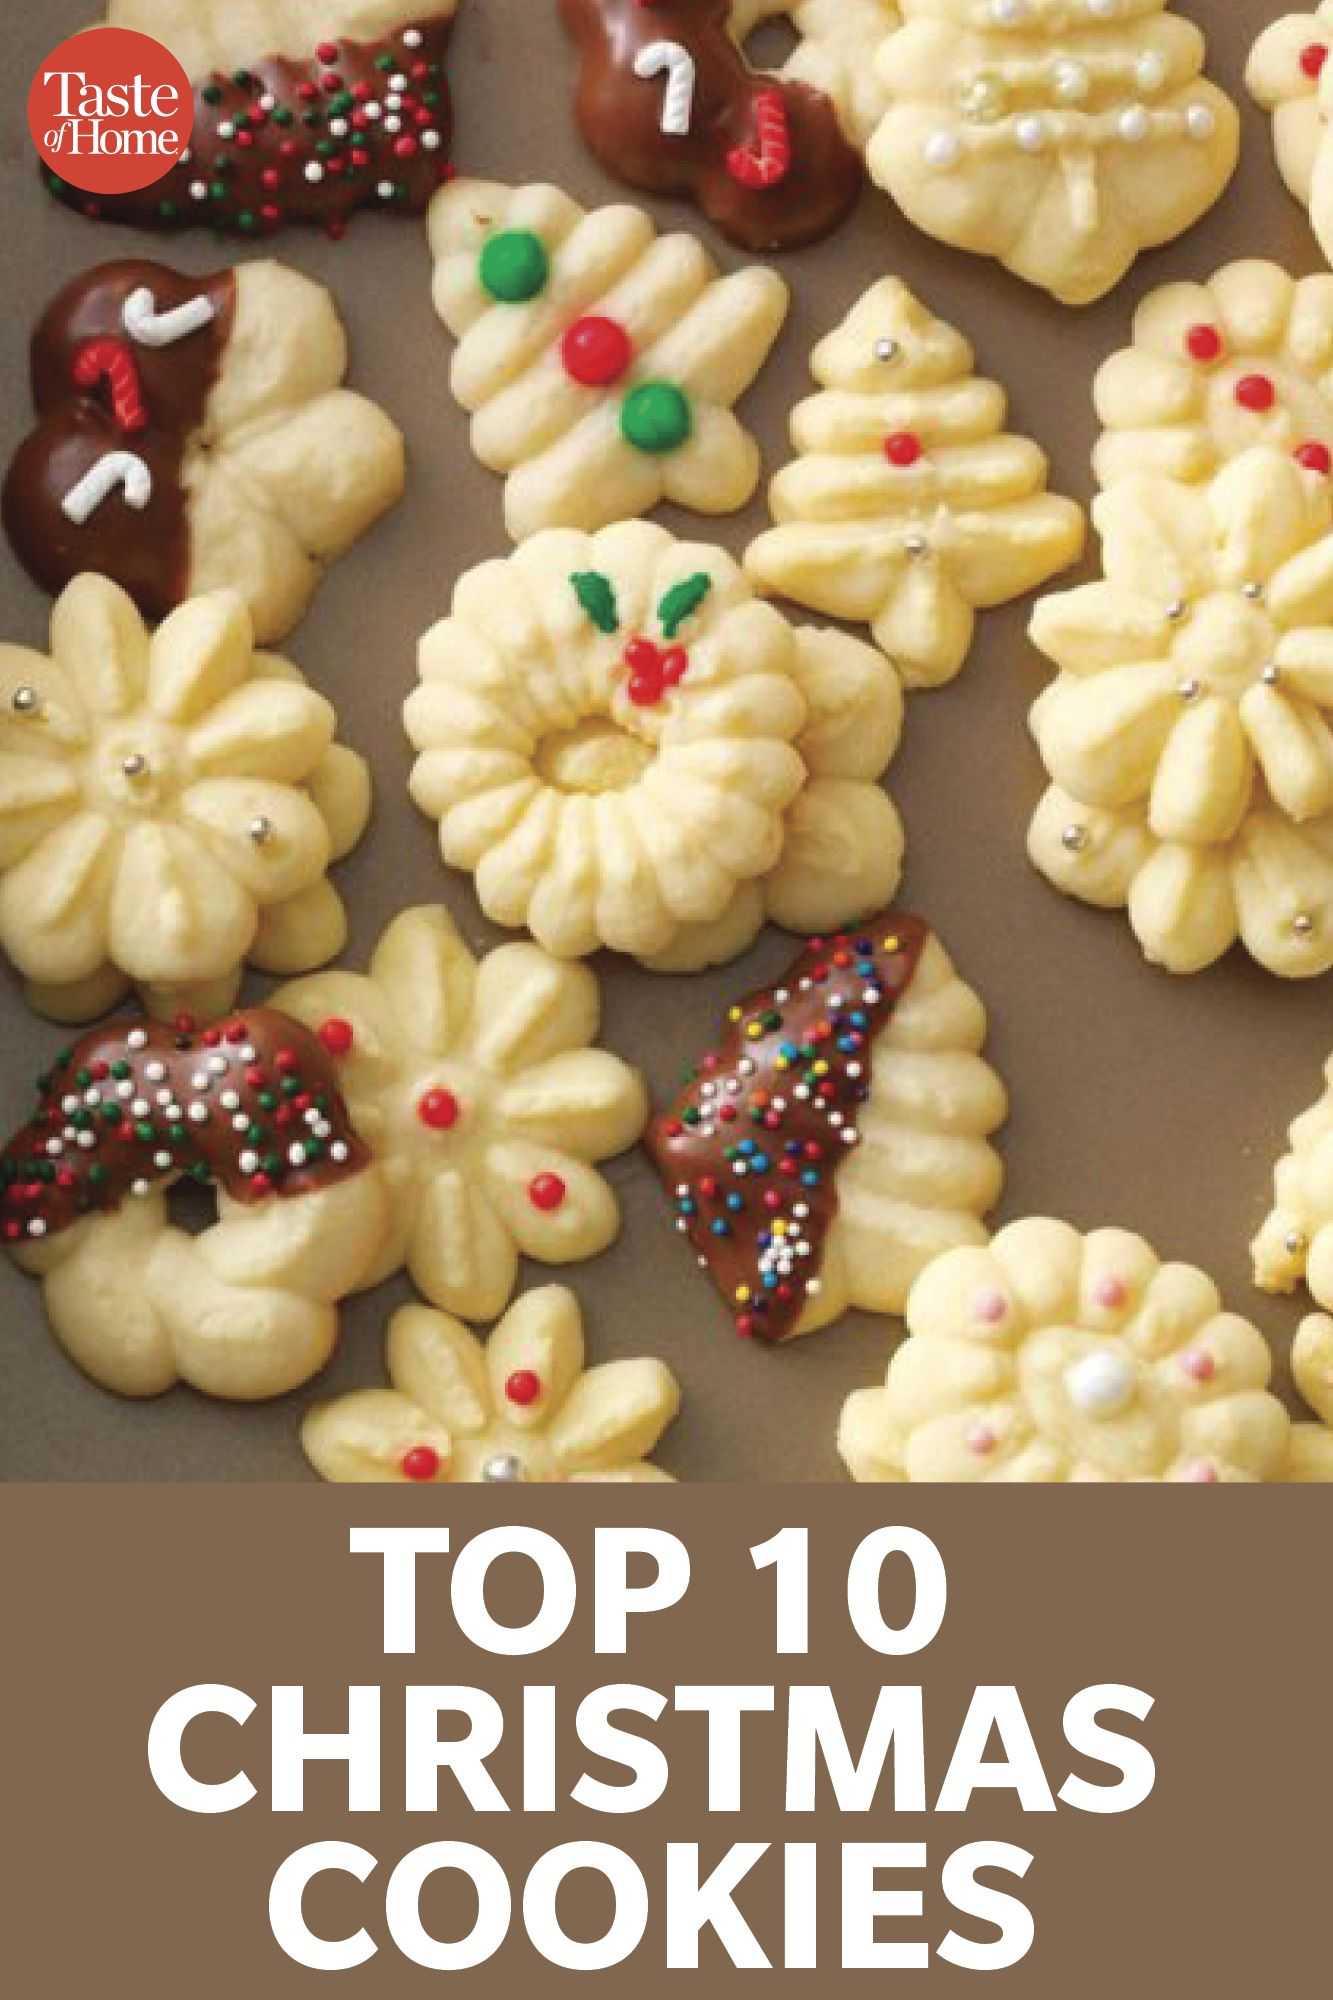 Our Top 10 Christmas Cookie Recipes In 2020 Cookies Recipes Christmas Christmas Cookies Spritz Cookies